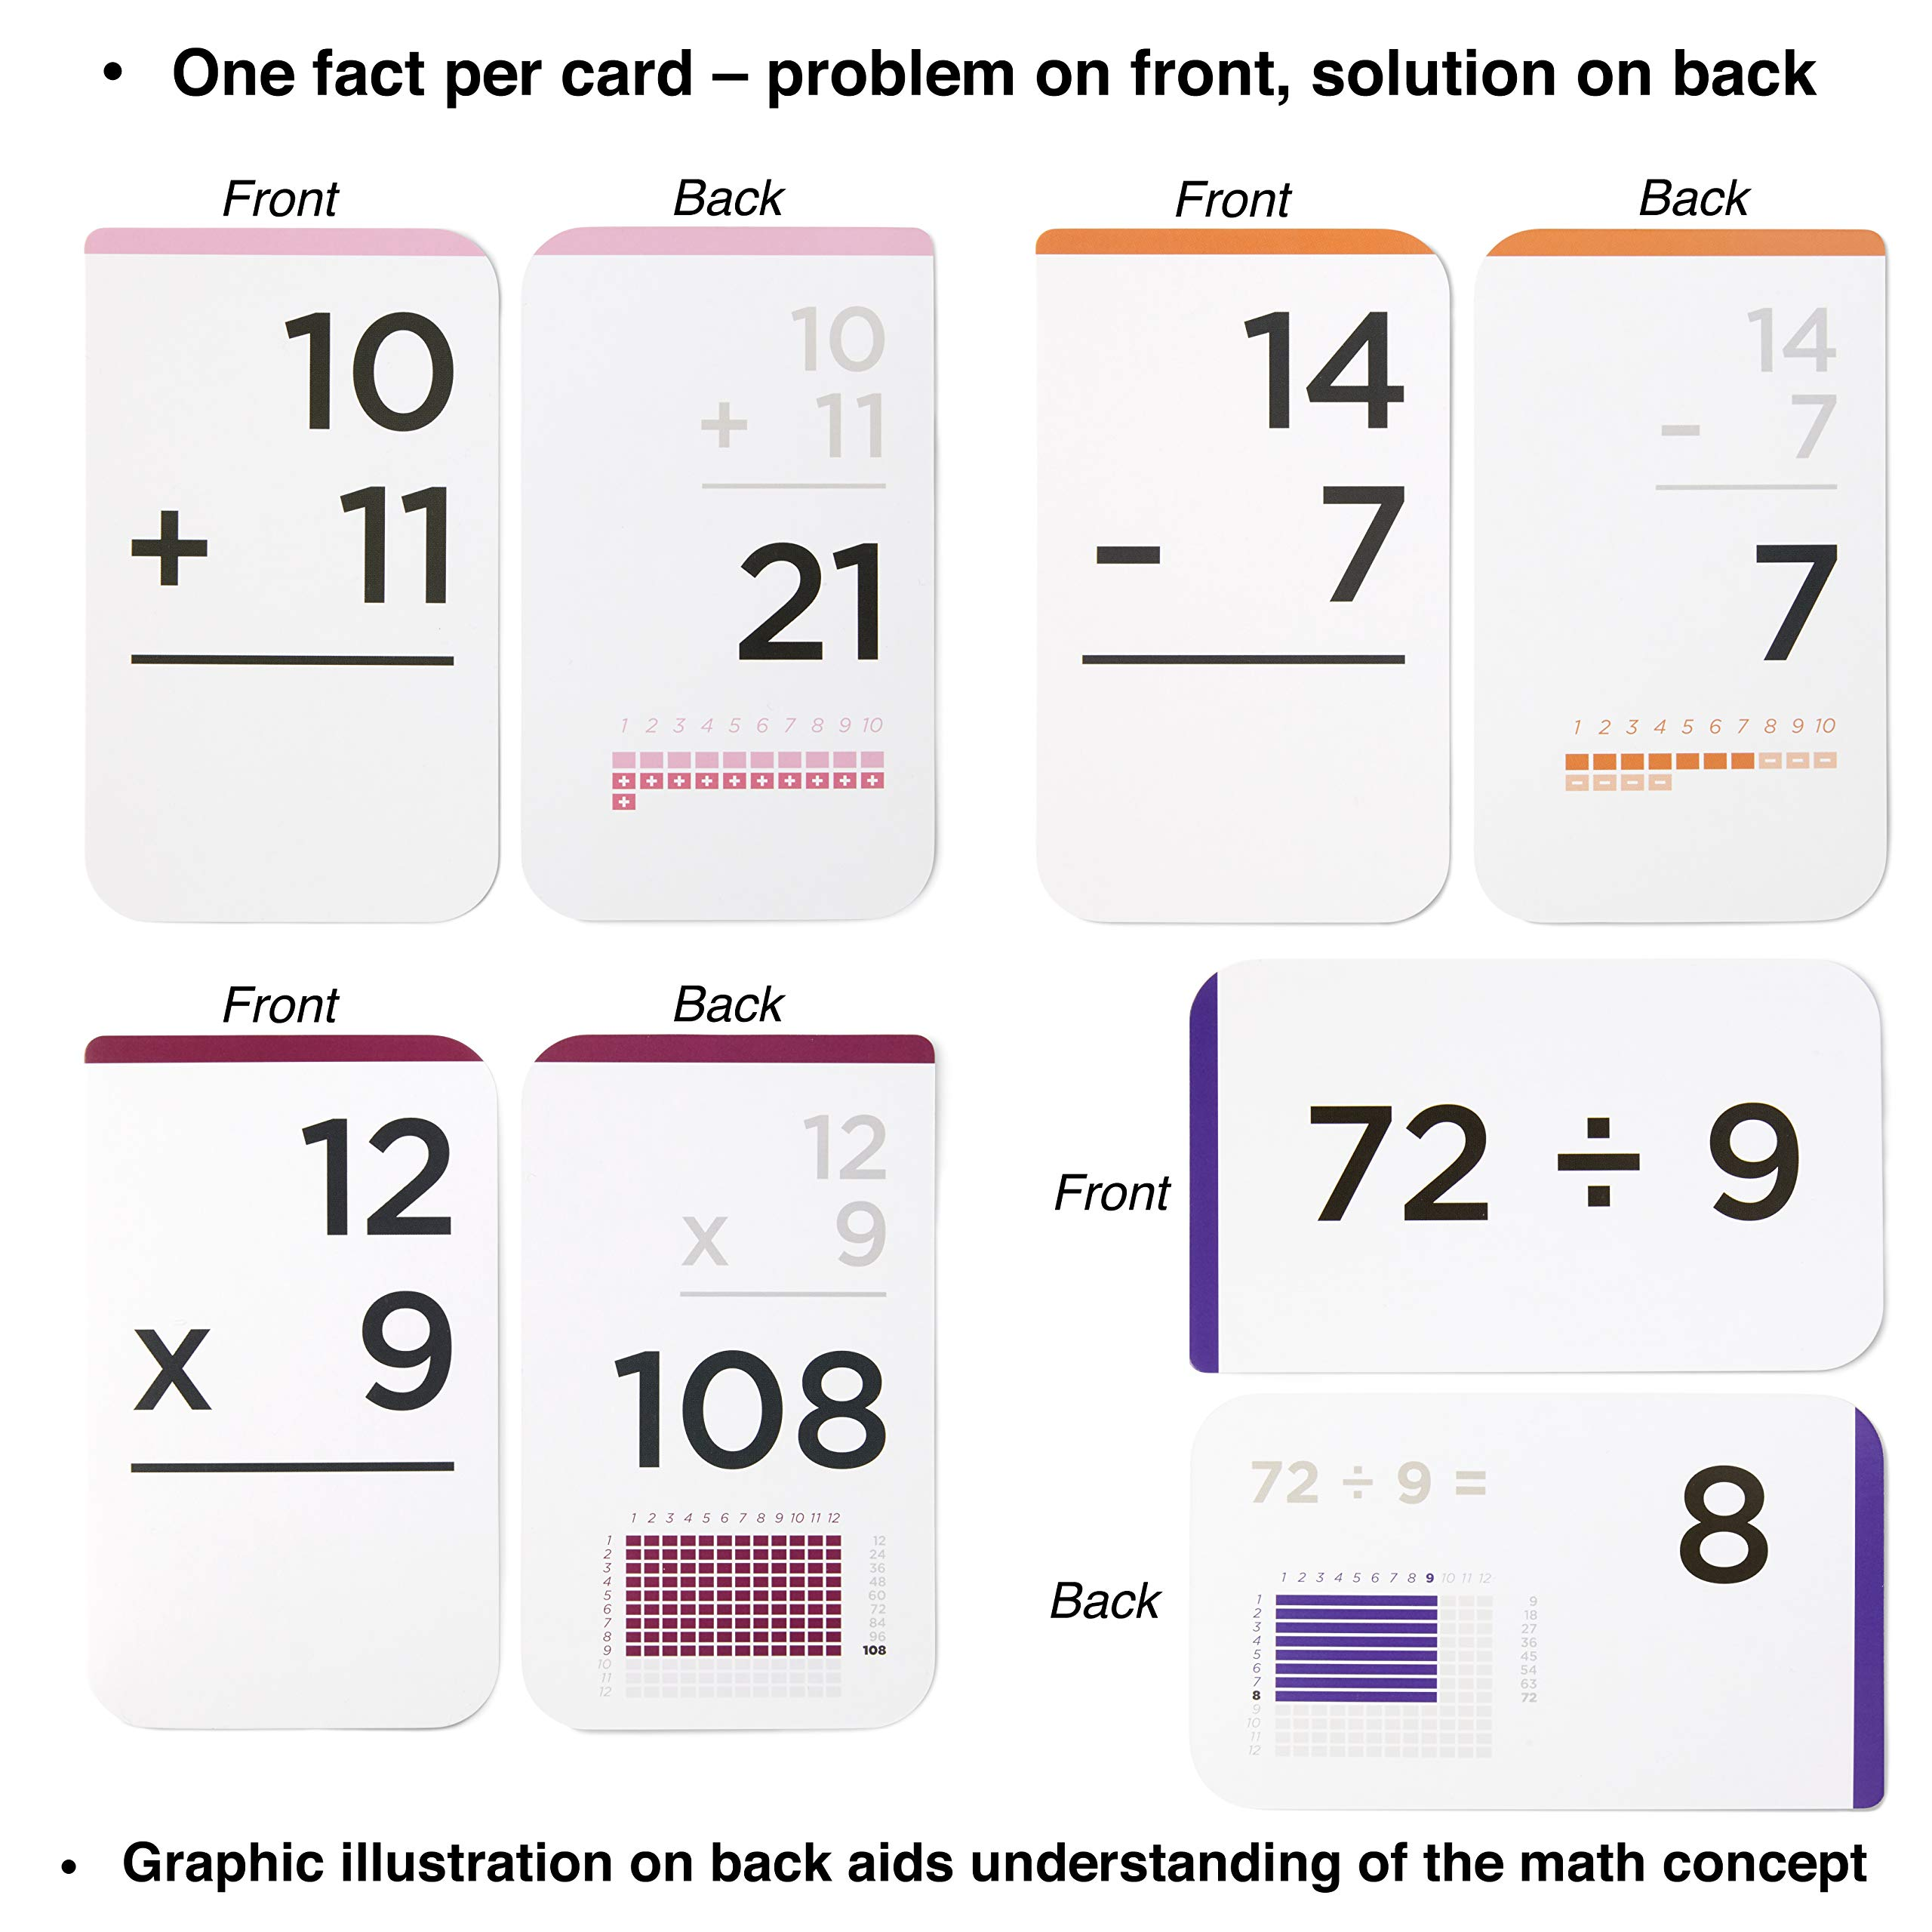 681 Math ADDITION, SUBTRACTION, MULTIPLICATION and DIVISION FLASH CARDS | Bundle Kit with Full Box Sets | All Facts Color Coded | Best for Kids in Kindergarten, 1ST, 2ND, 3RD, 4TH, 5TH and 6TH Grade by Think Tank Scholar (Image #4)